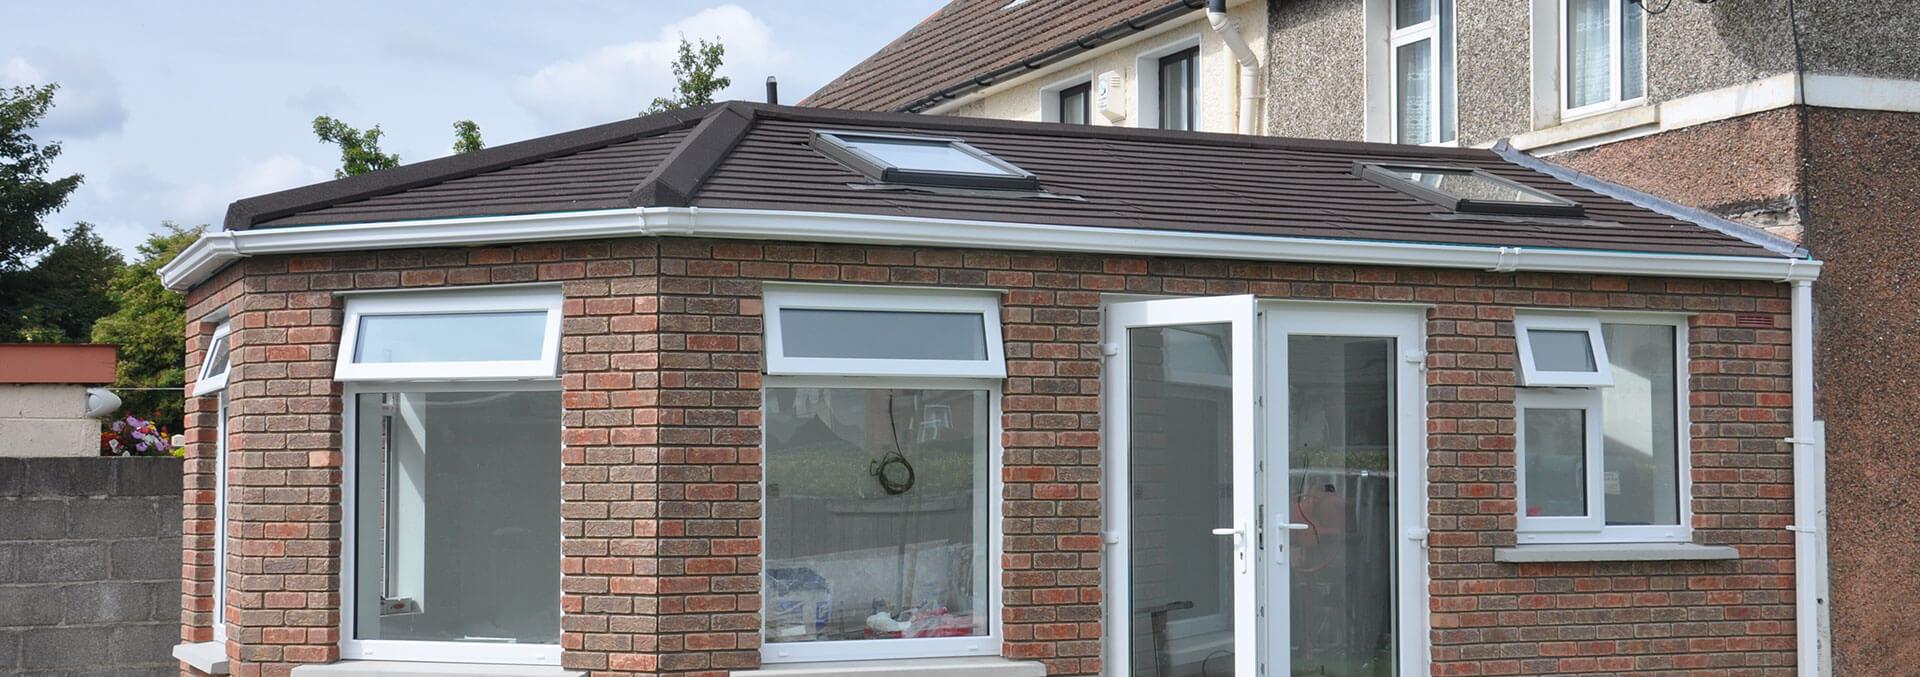 Tiled warm roof conservatory